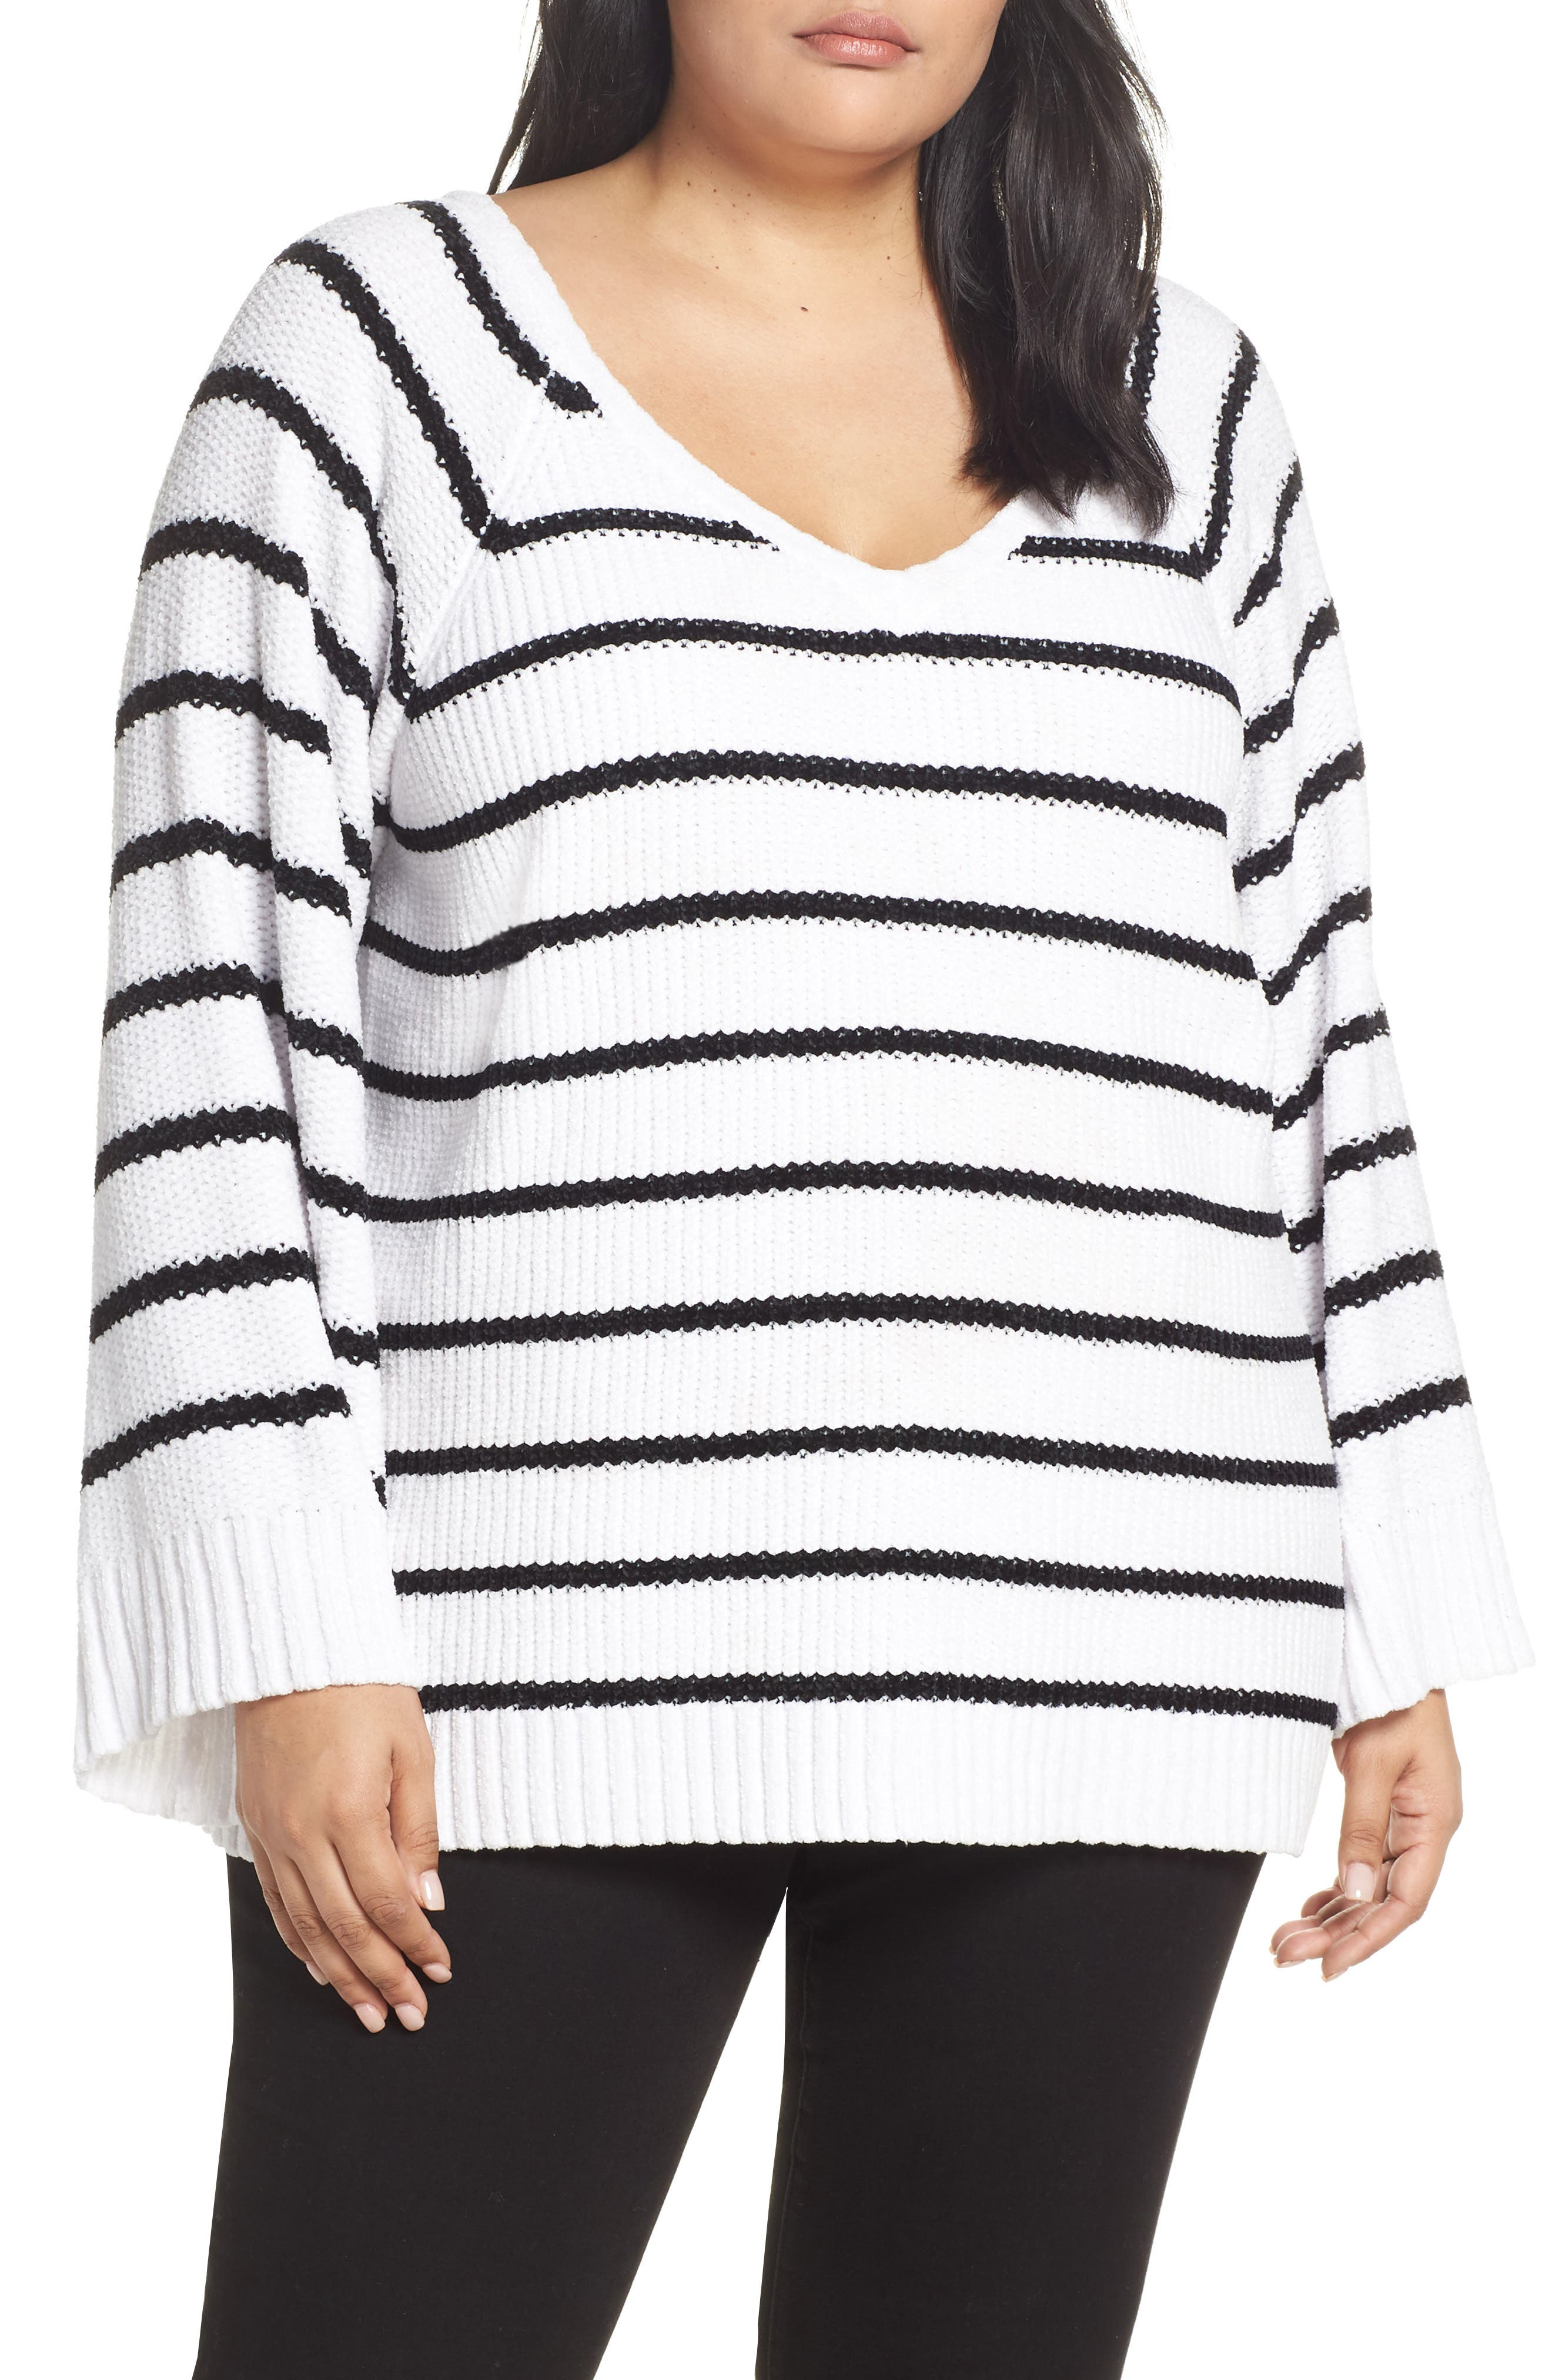 &.LAYERED Stripe V-Neck Sweater, Main, color, 110